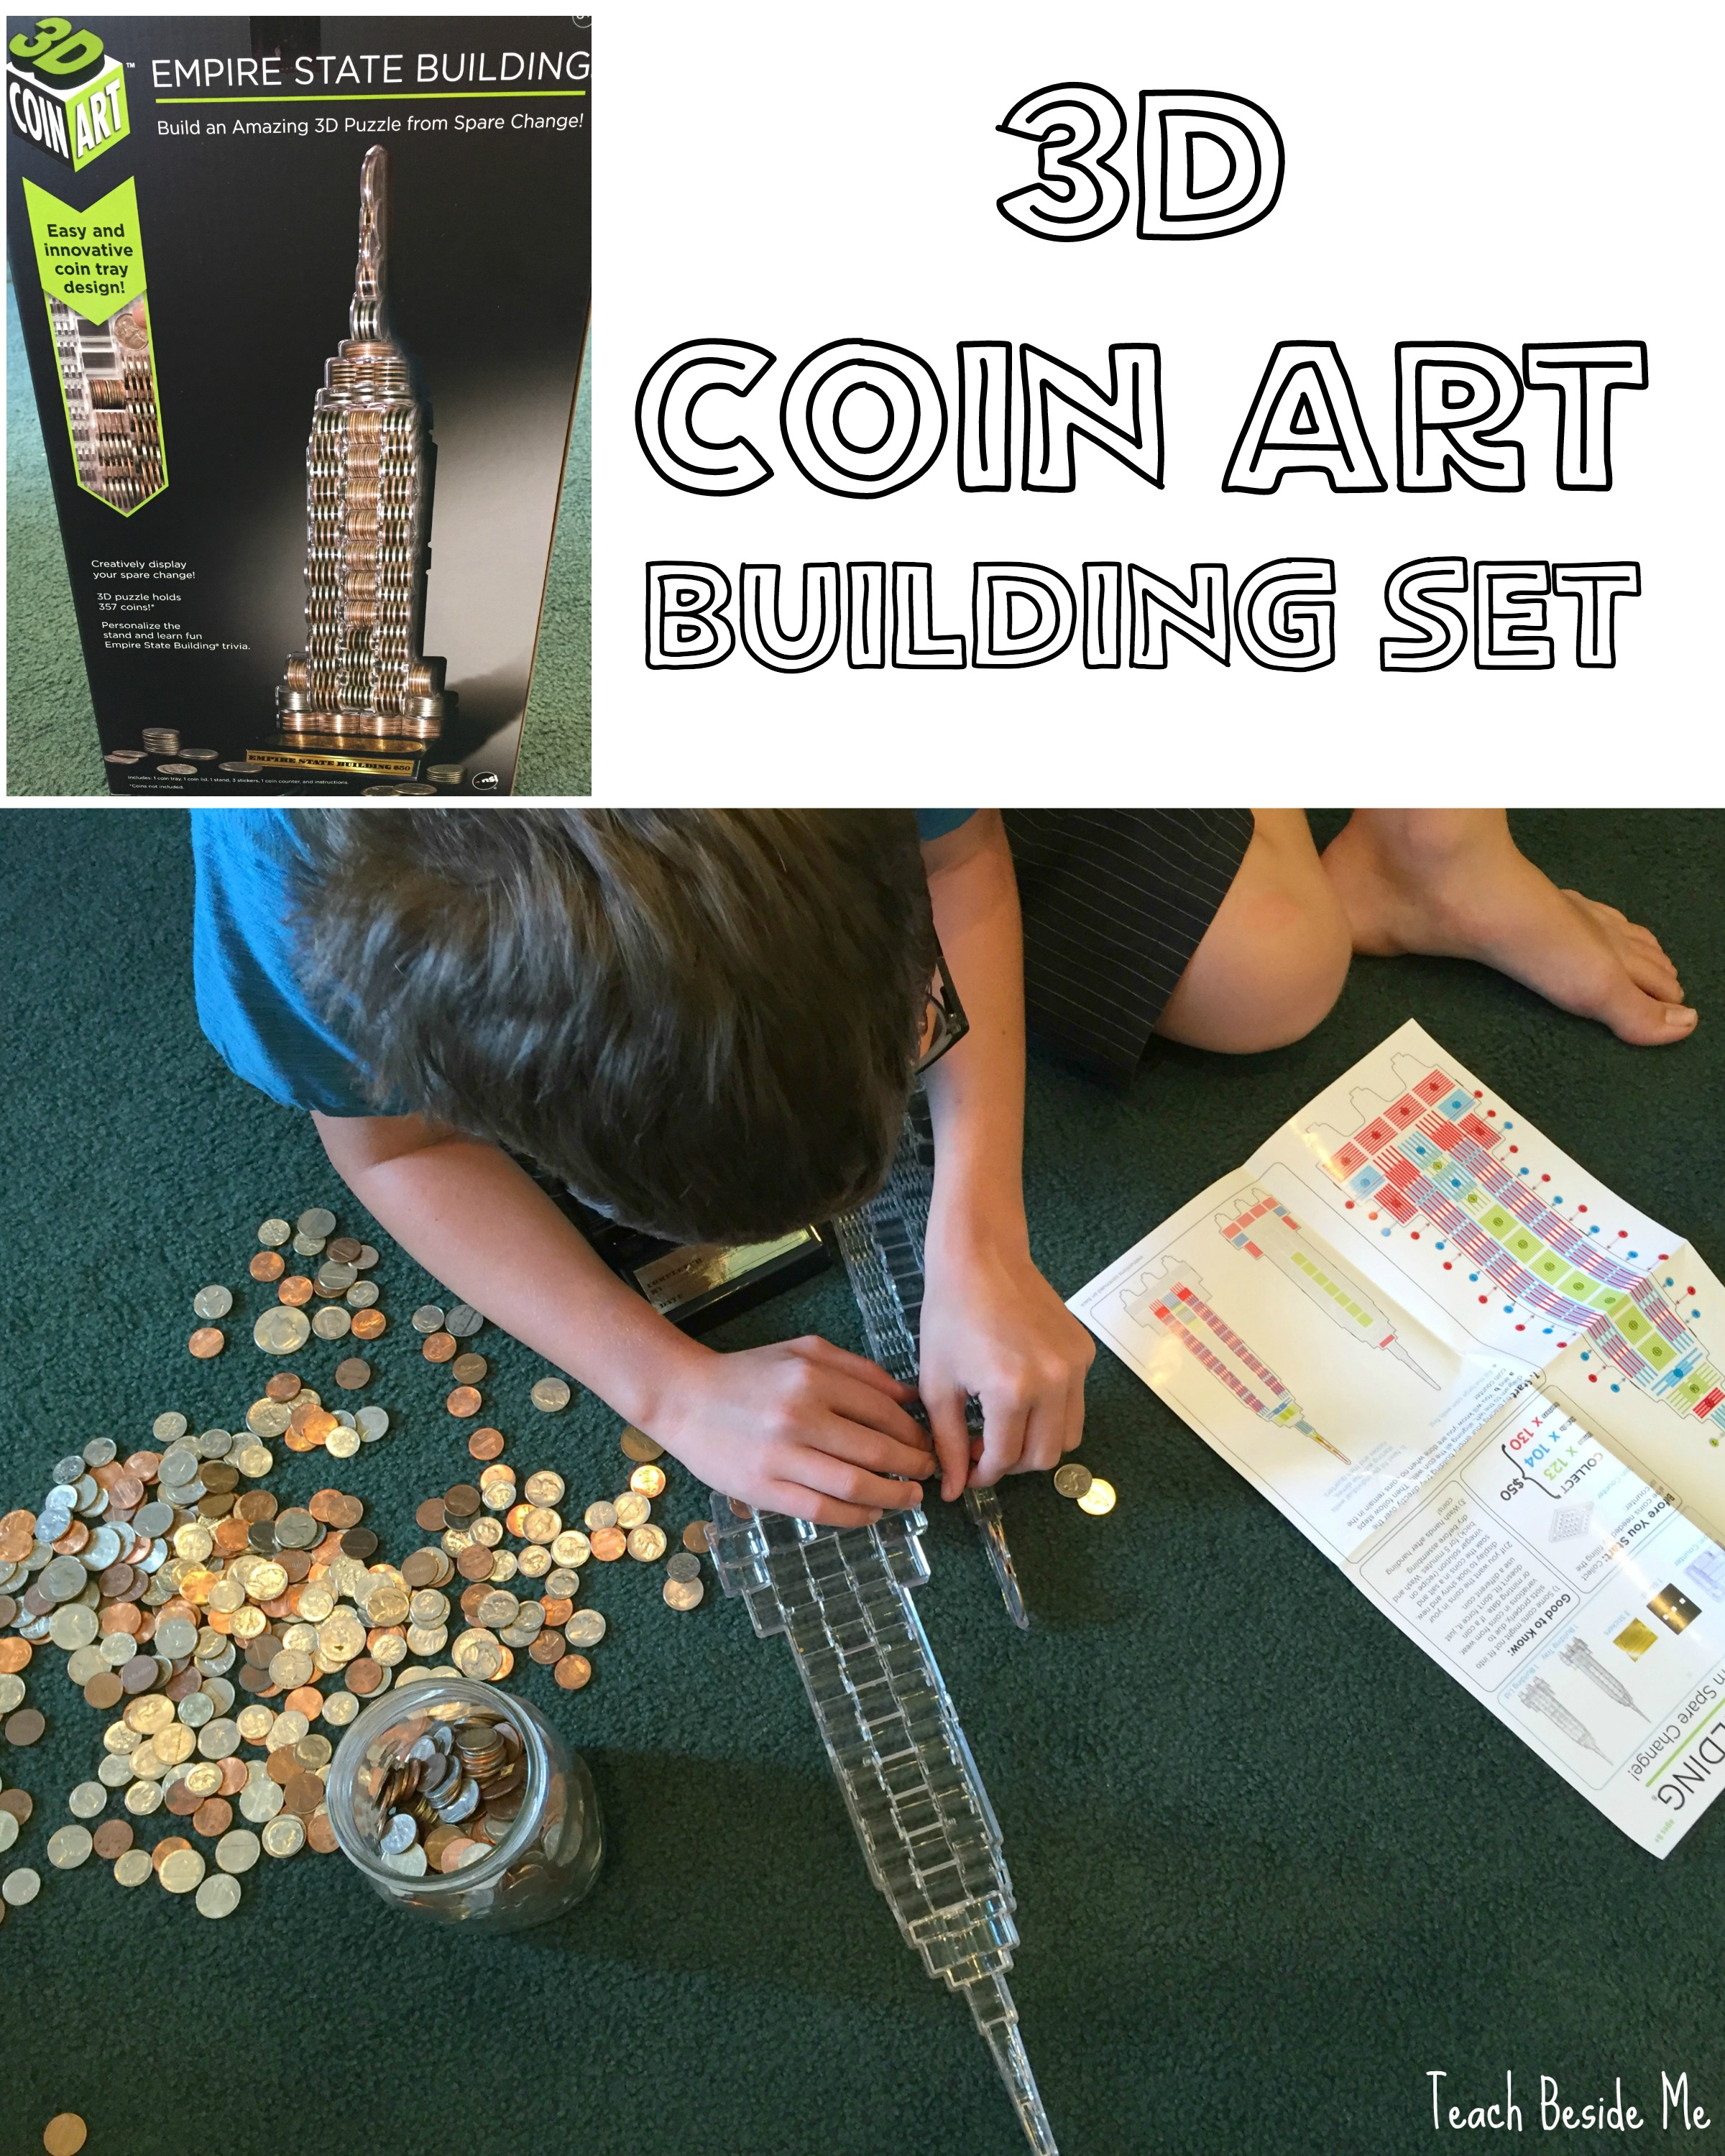 3D Coin Art Structures